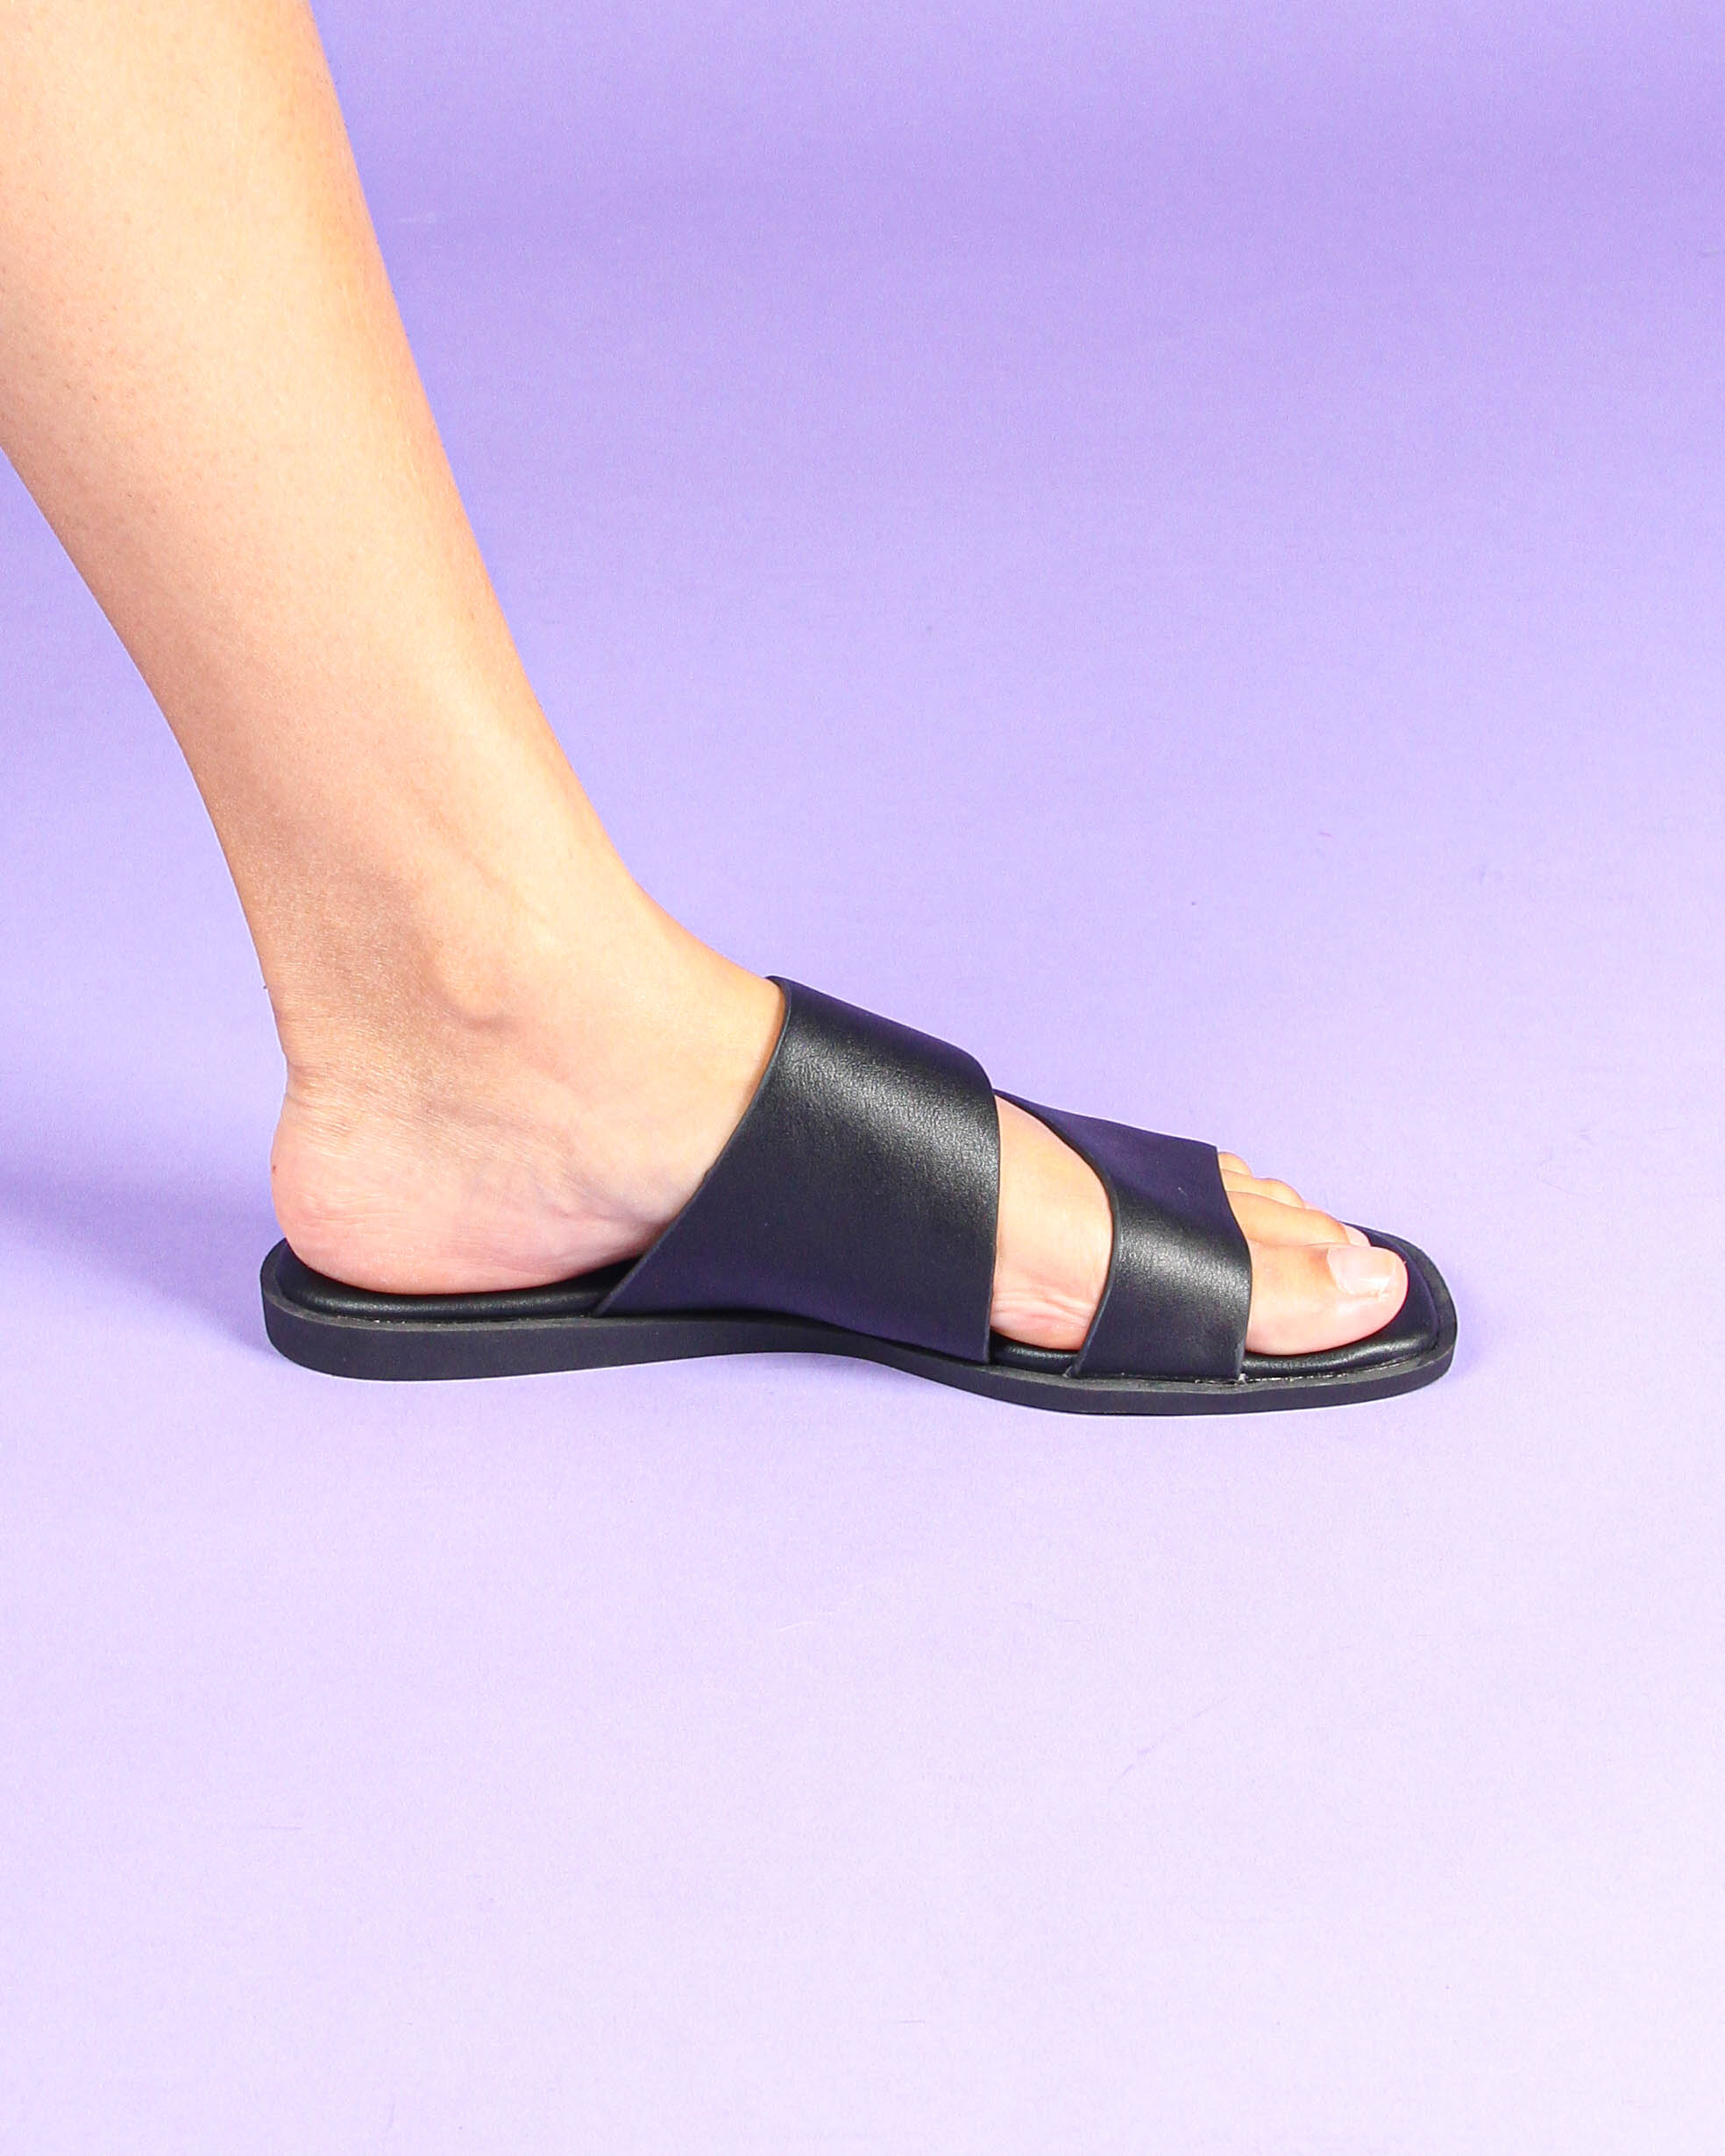 Duo Strappy Sandals in Black